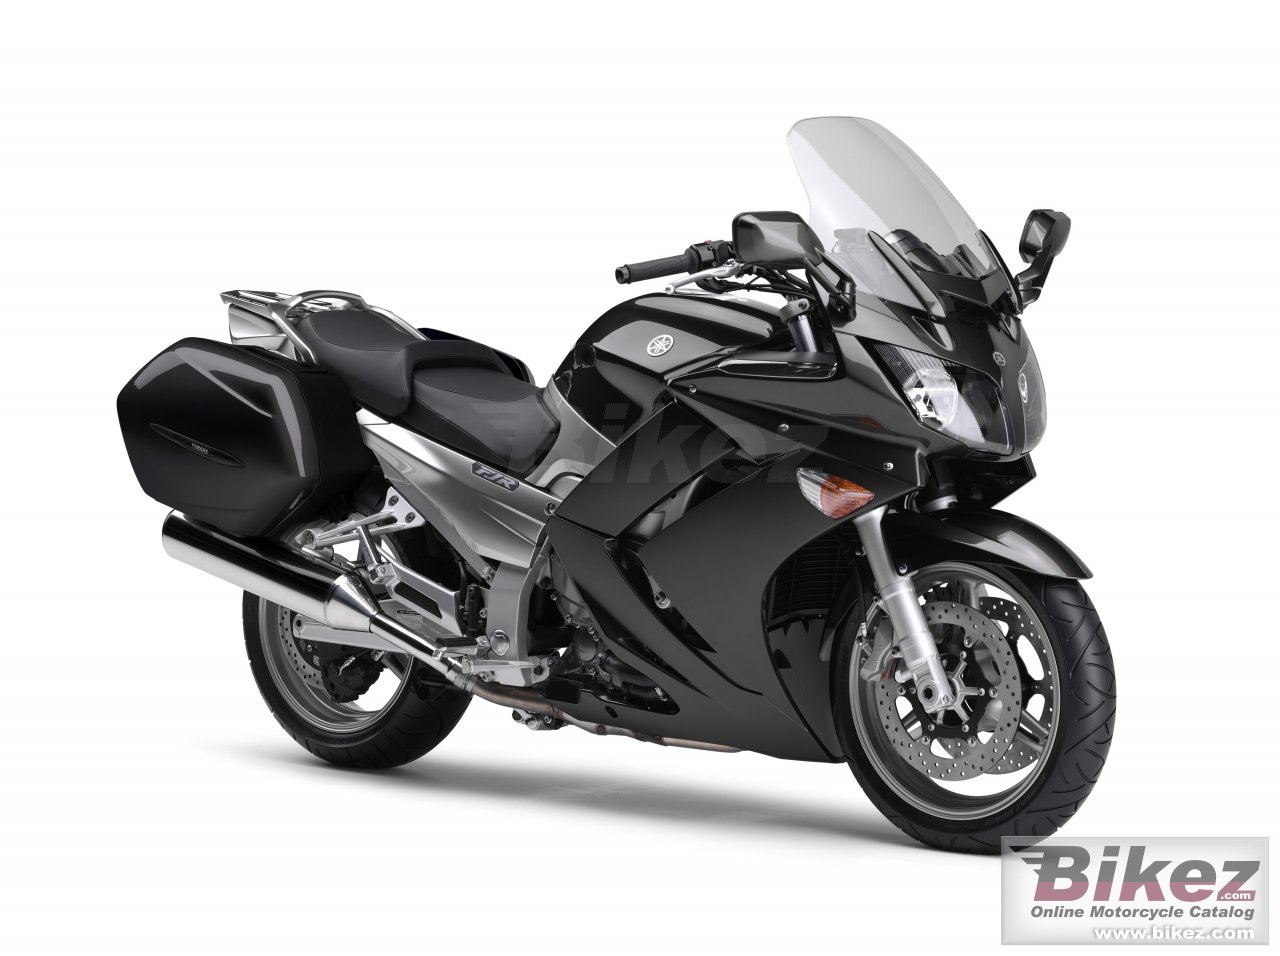 Big Yamaha fjr1300a picture and wallpaper from Bikez.com